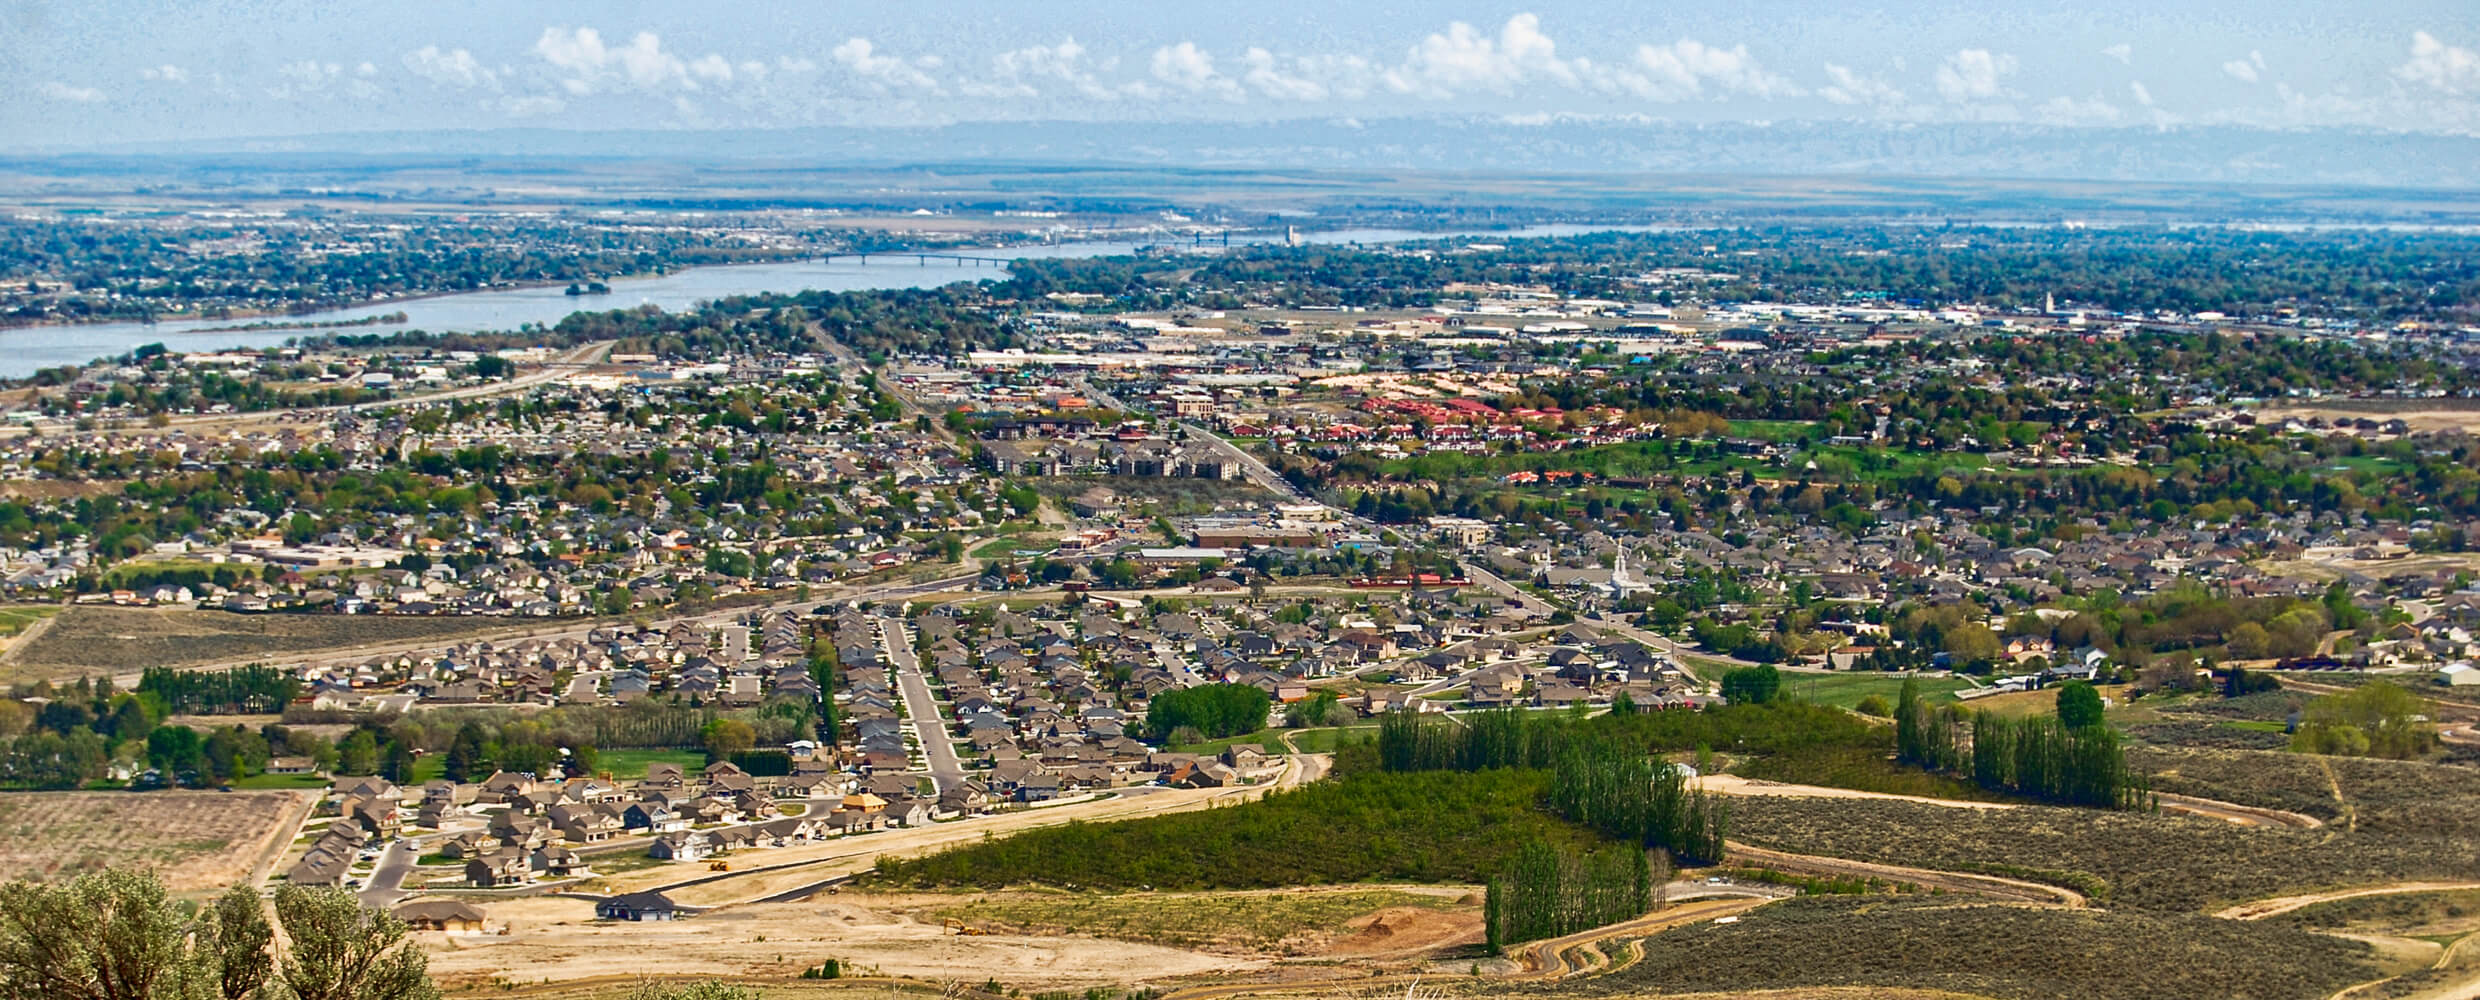 Aerial of the Tri-Cities area with river in distance.